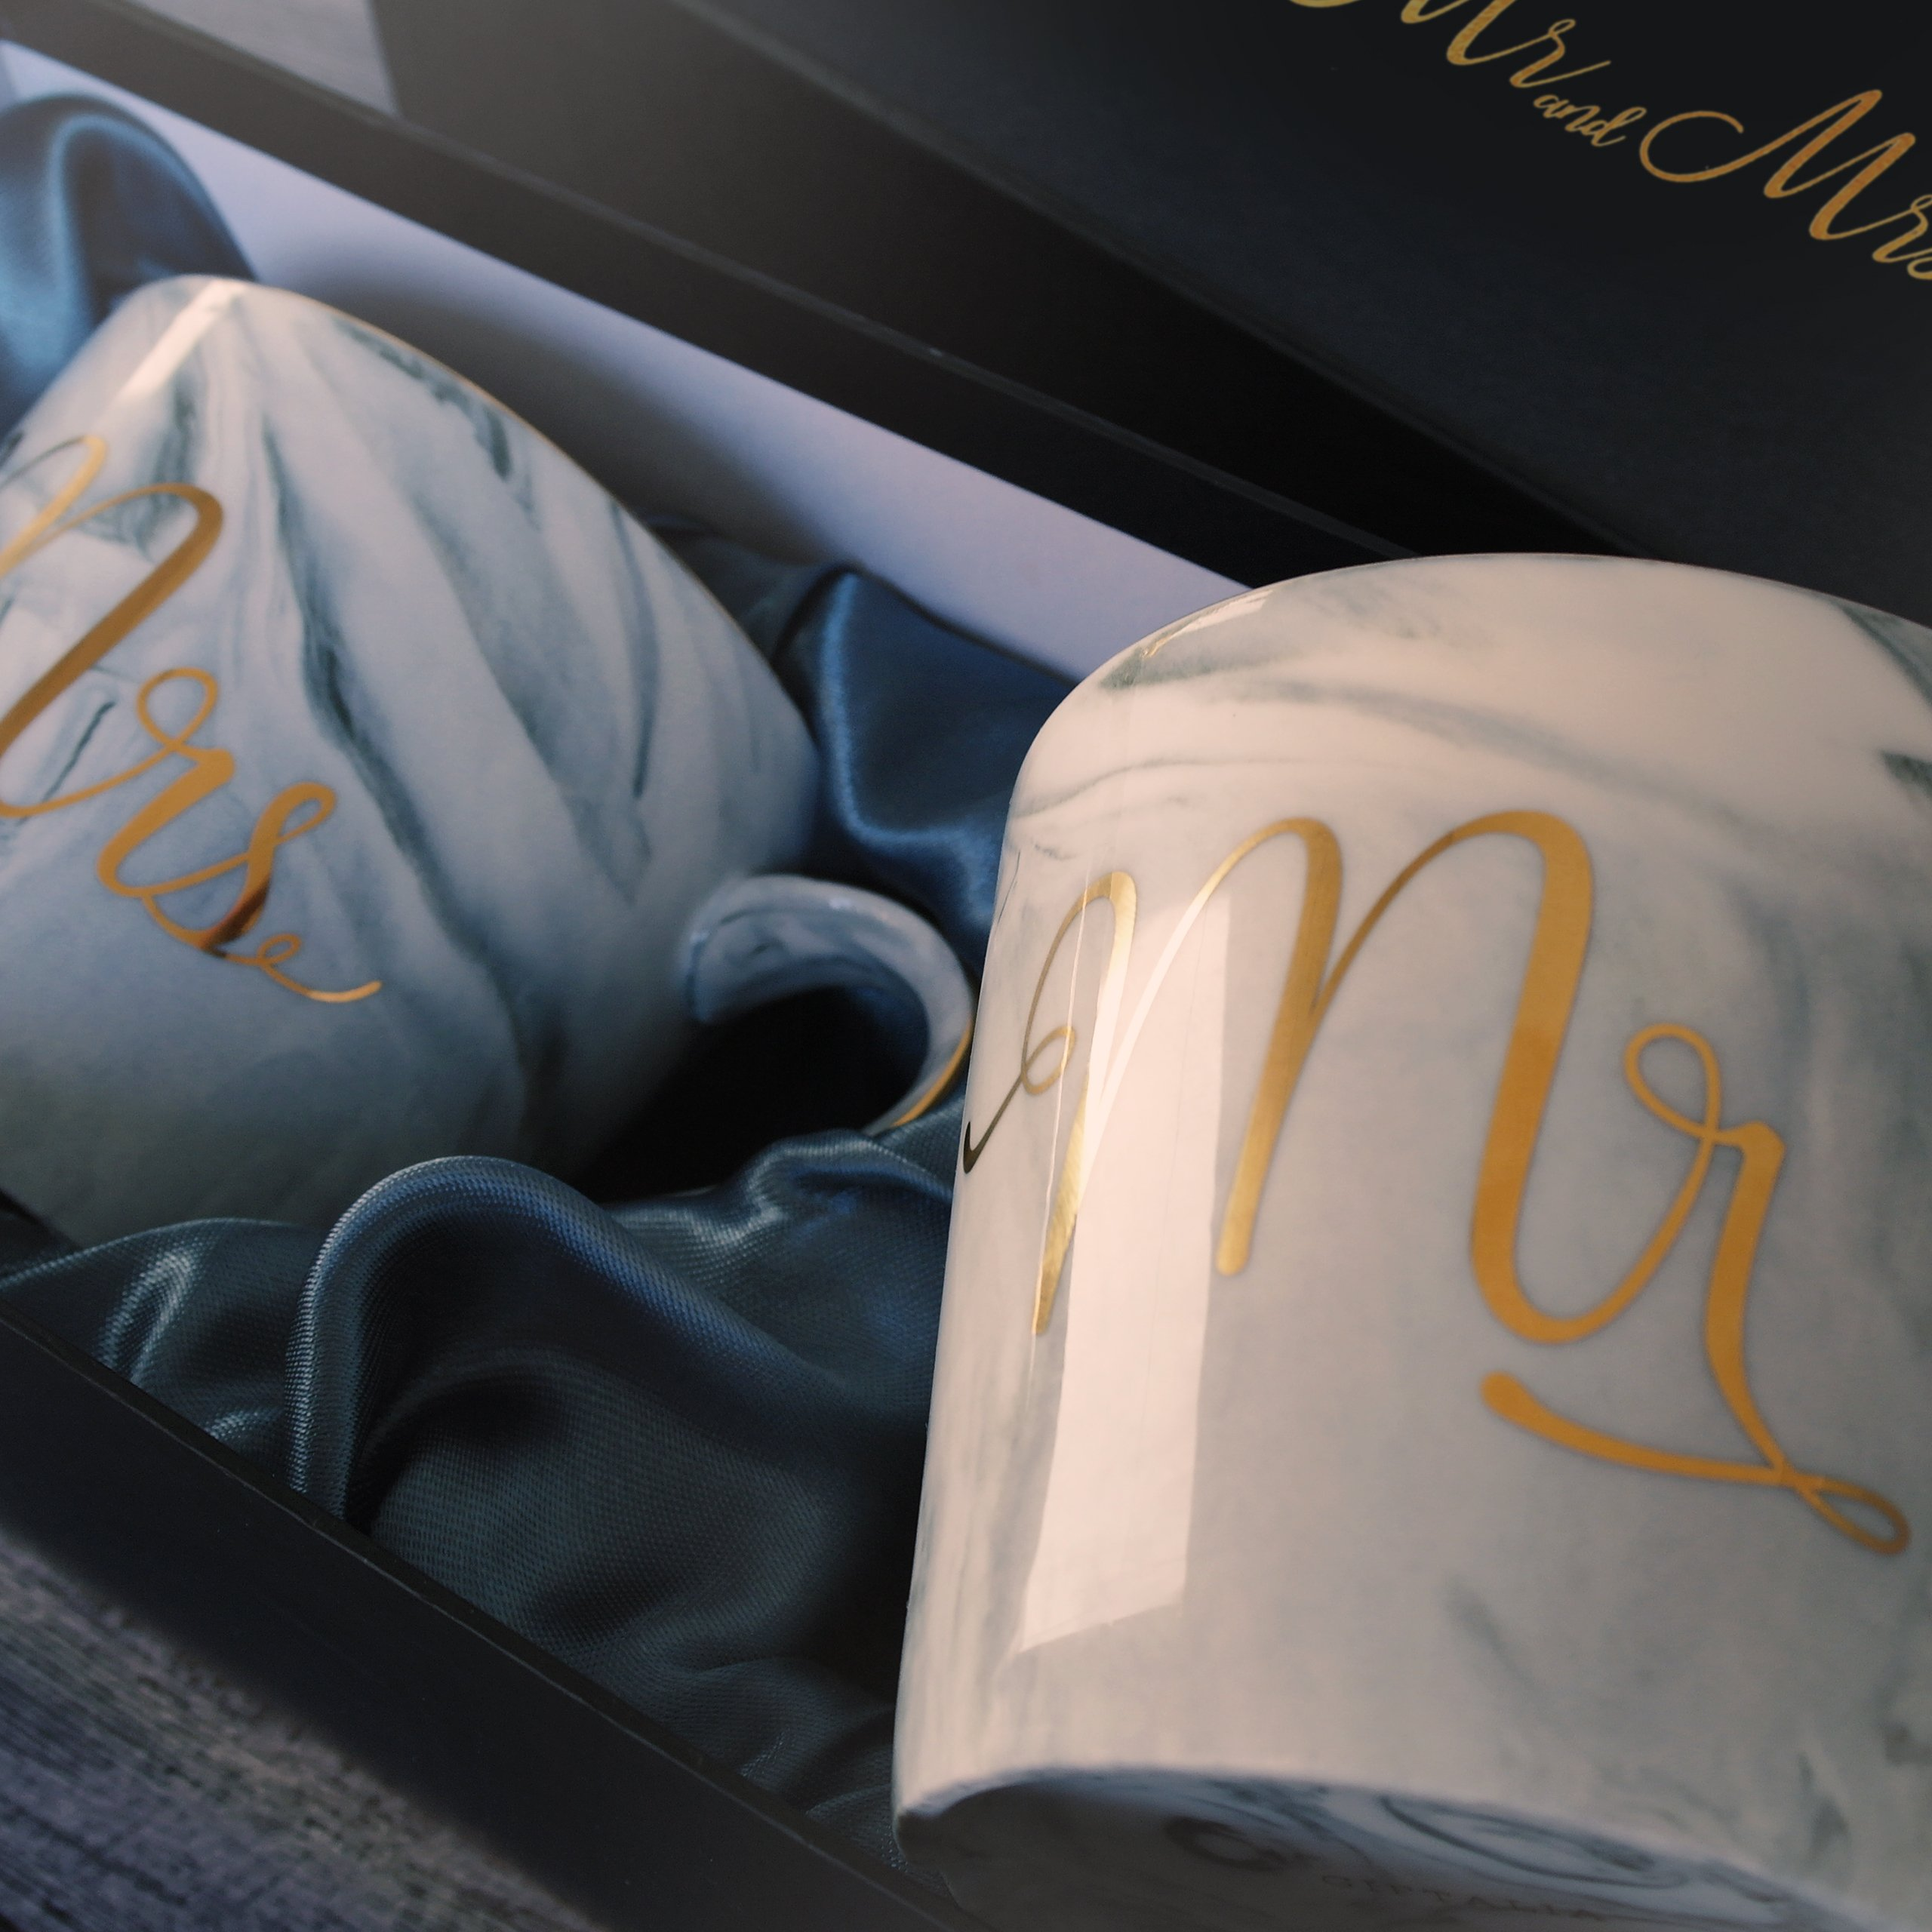 Wedding Gift - Mr and Mrs Mug Set - Classy and Elegant Gift Box with 2 Marble/Gold Tea or Coffee Cups - Beautiful Couples Anniversary, Engagement or Wedding Present for Bride and Groom - His and Her's by GIFTALIA (Image #6)